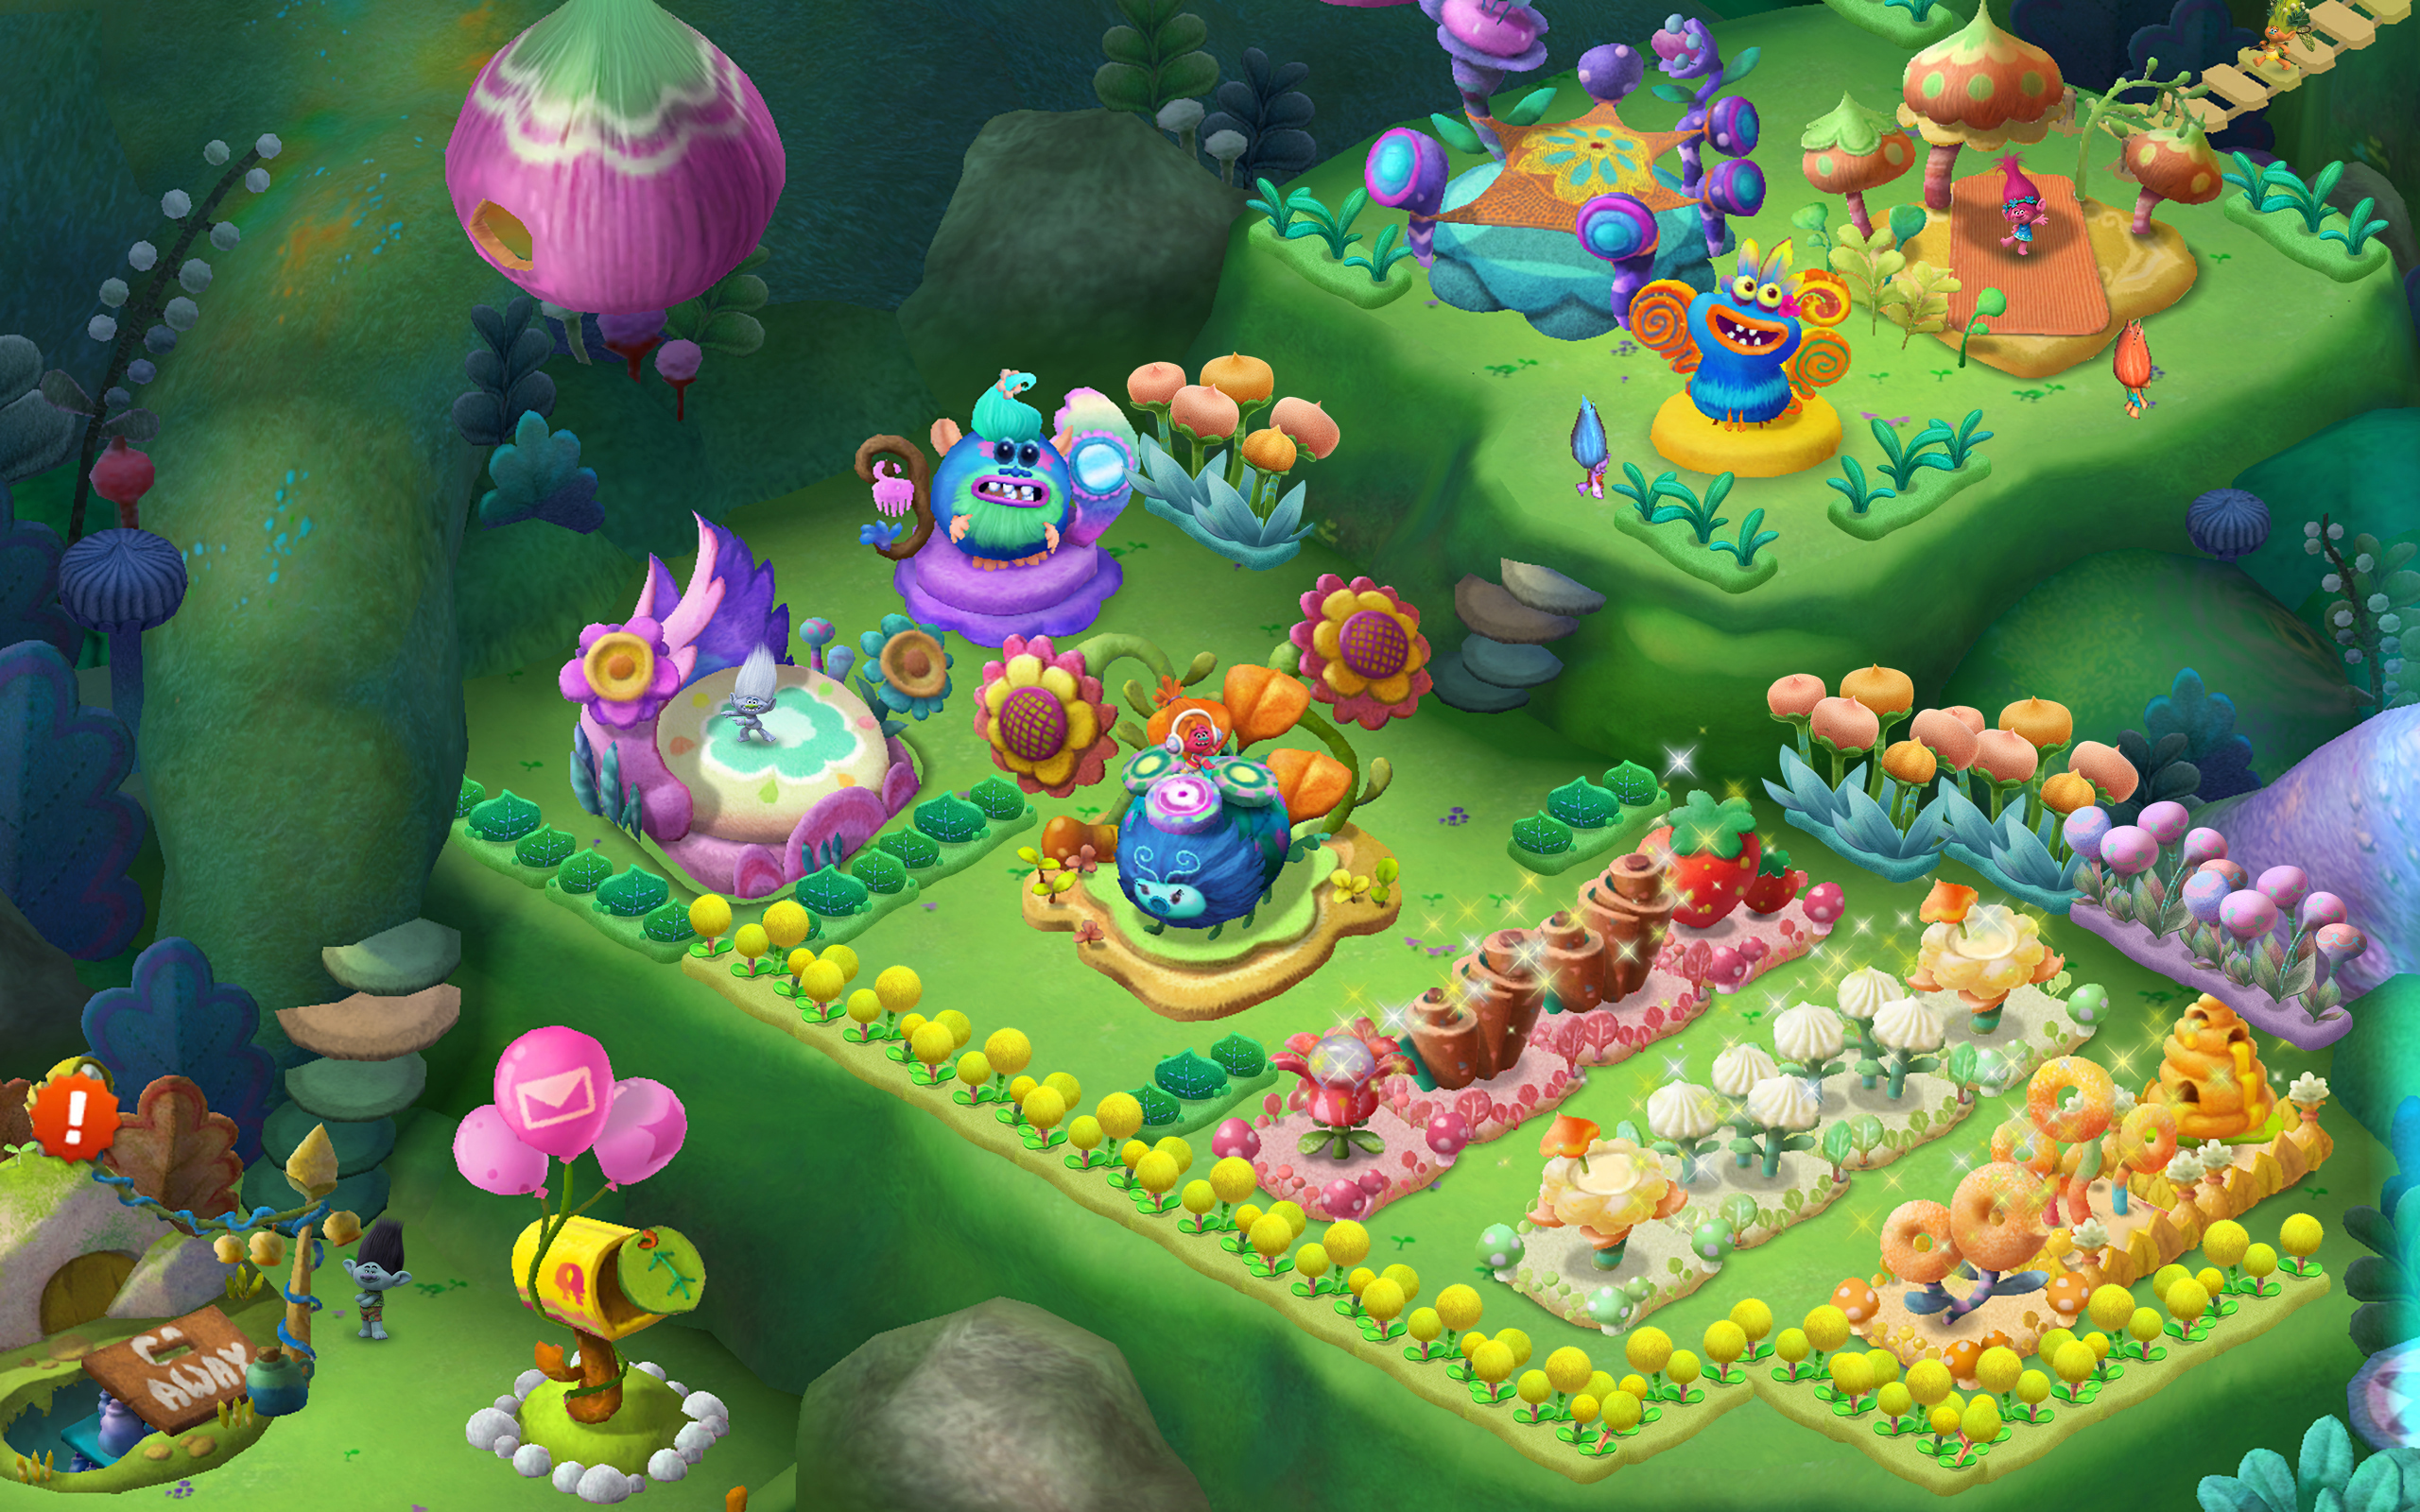 DreamWorks's Trolls movie has a mobile game out now, features hair and doll parties